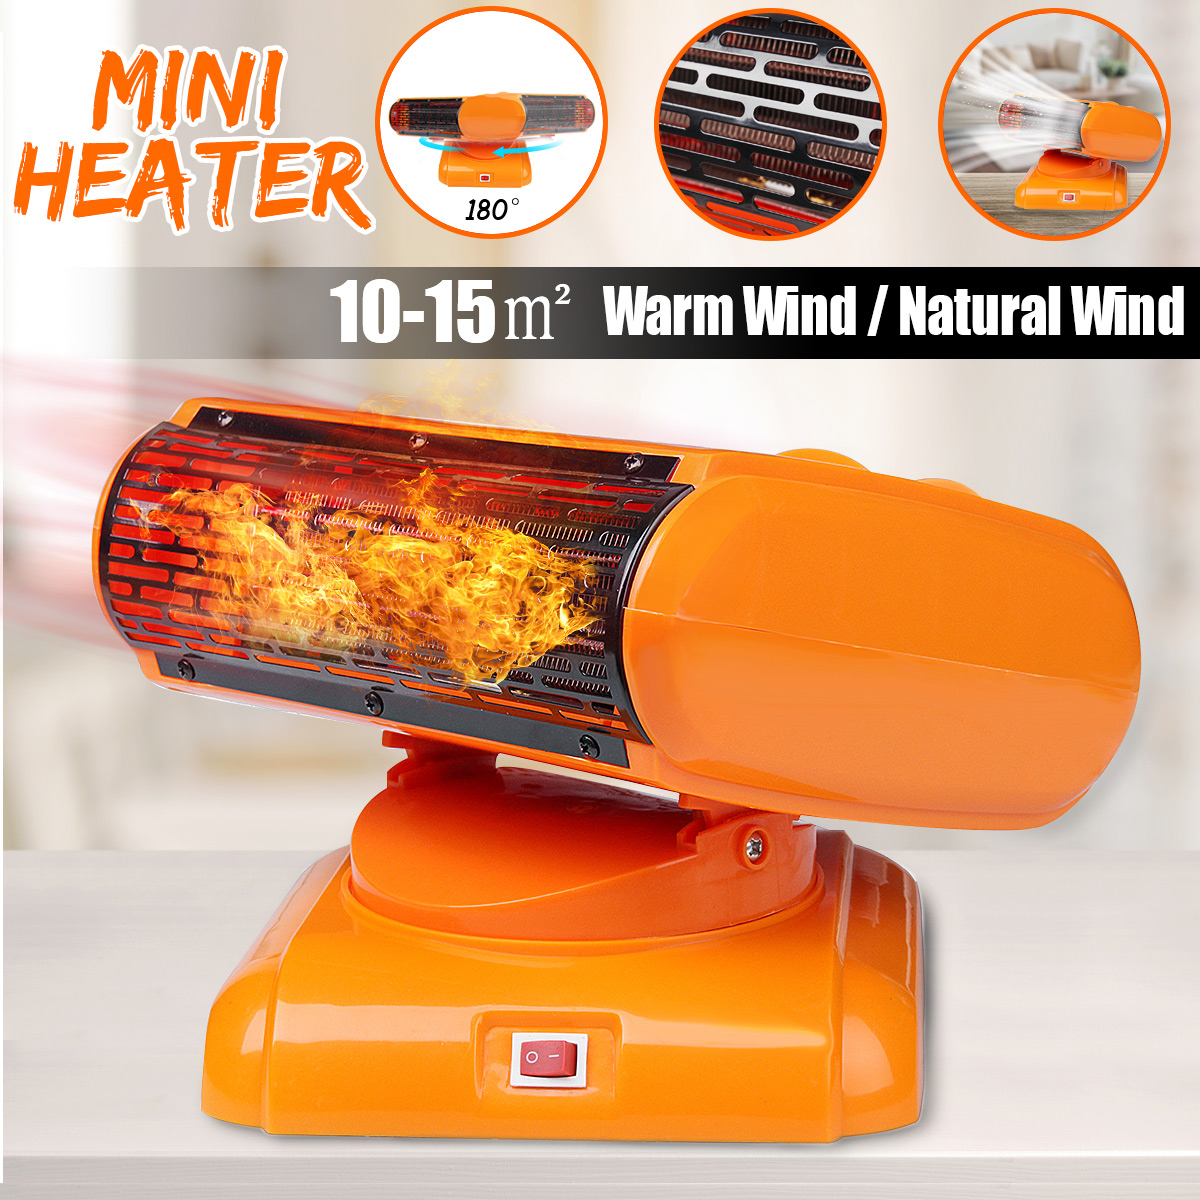 Power Electric Heater Fan Energy Saving Mini Desktop Warm Air Conditioning Warm/Natural Wind For Winter Heating Office HomePower Electric Heater Fan Energy Saving Mini Desktop Warm Air Conditioning Warm/Natural Wind For Winter Heating Office Home